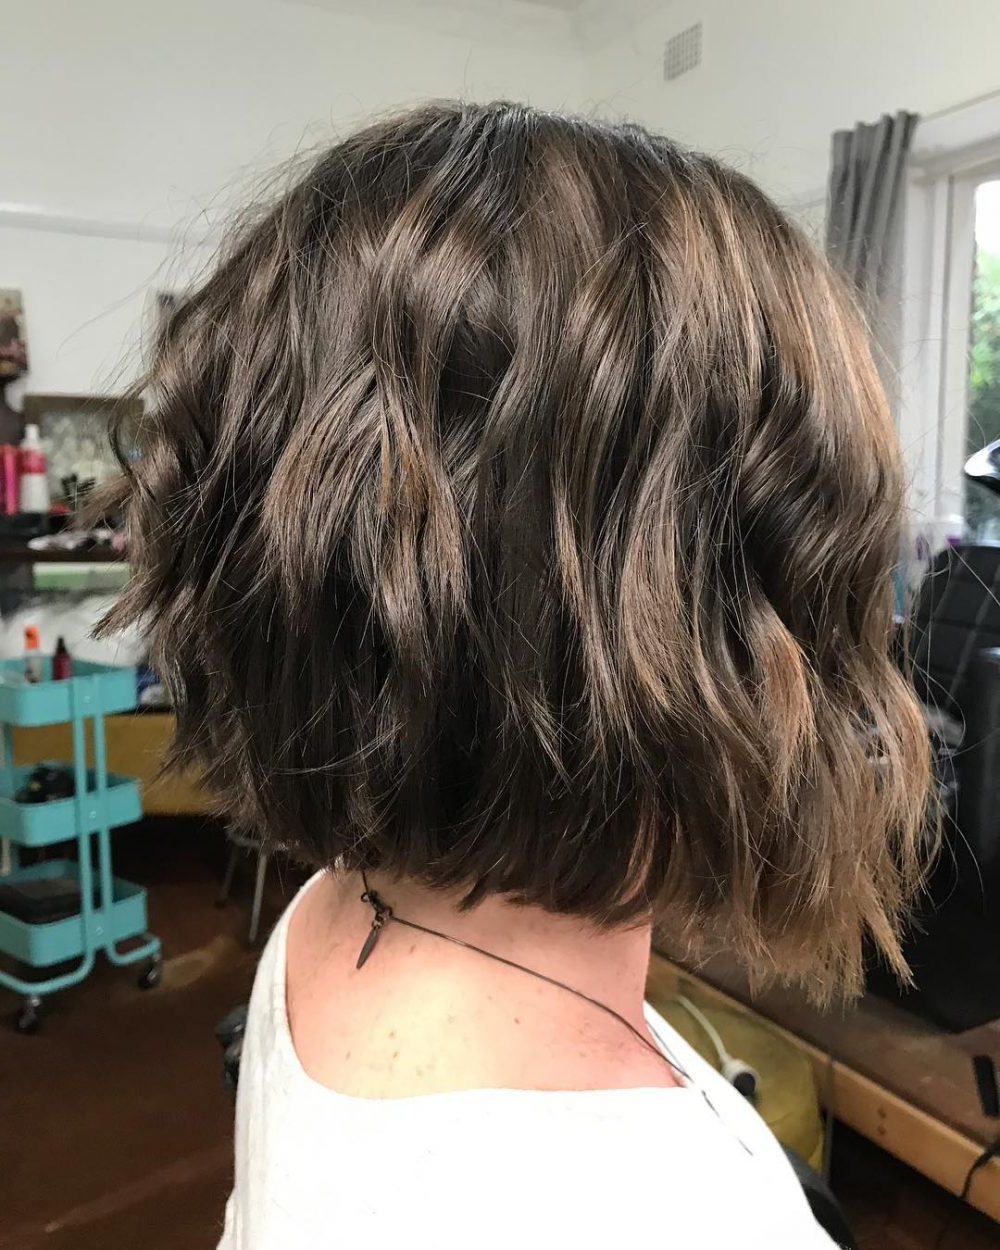 45 Chic Choppy Bob Hairstyles For 2018 For Blue Balayage For Black Choppy Bob Hairstyles (View 9 of 20)